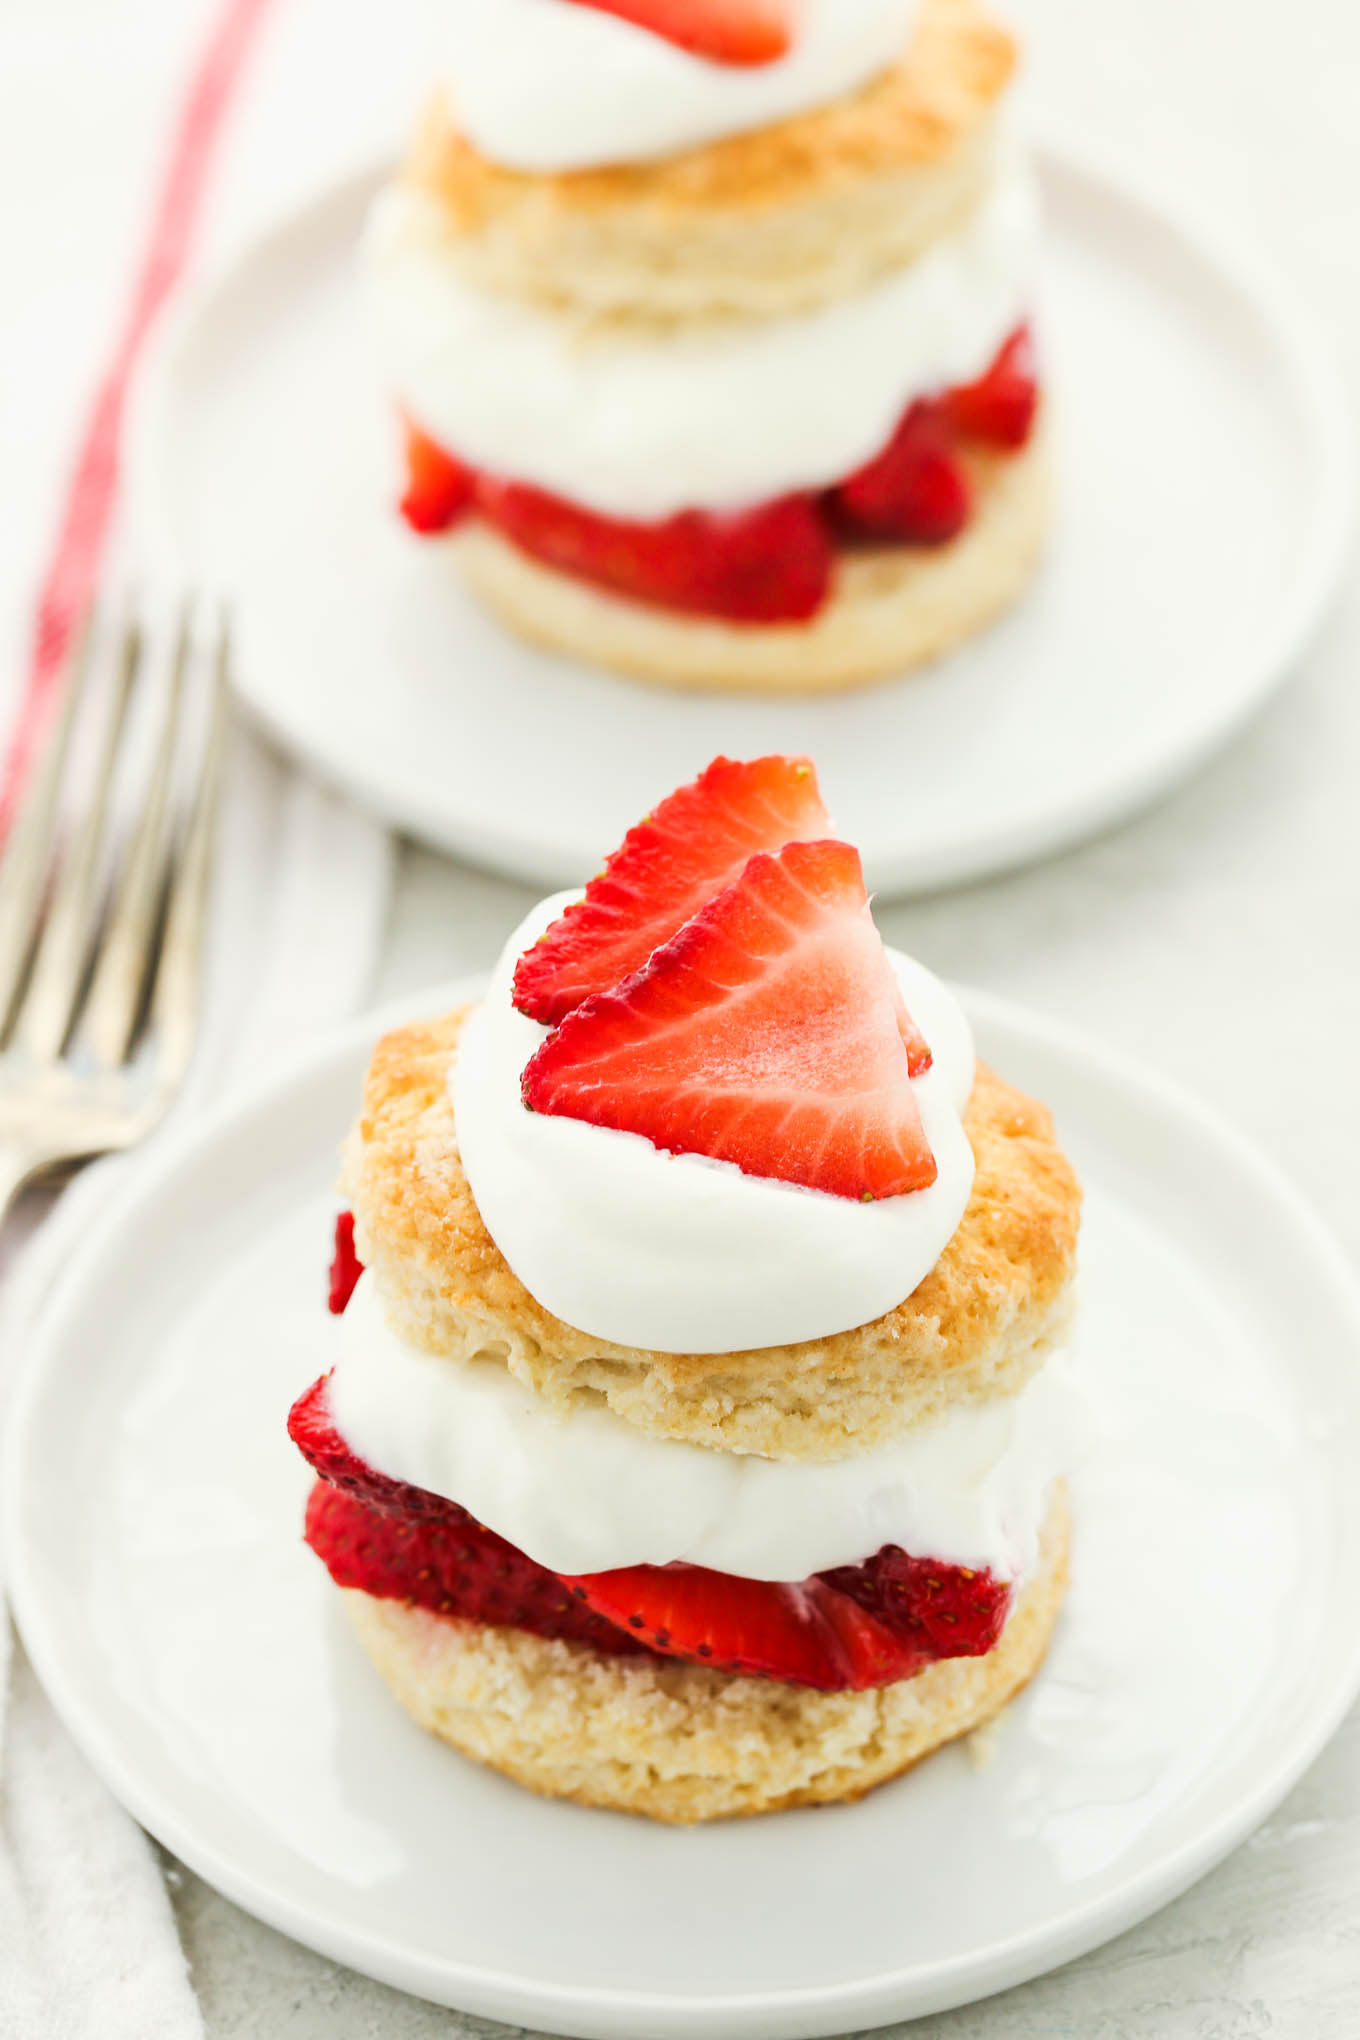 Lightly sweetened biscuits topped with sweet, juicy strawberries and homemade whipped cream. This Homemade Strawberry Shortcake is easy to make from scratch and so delicious!